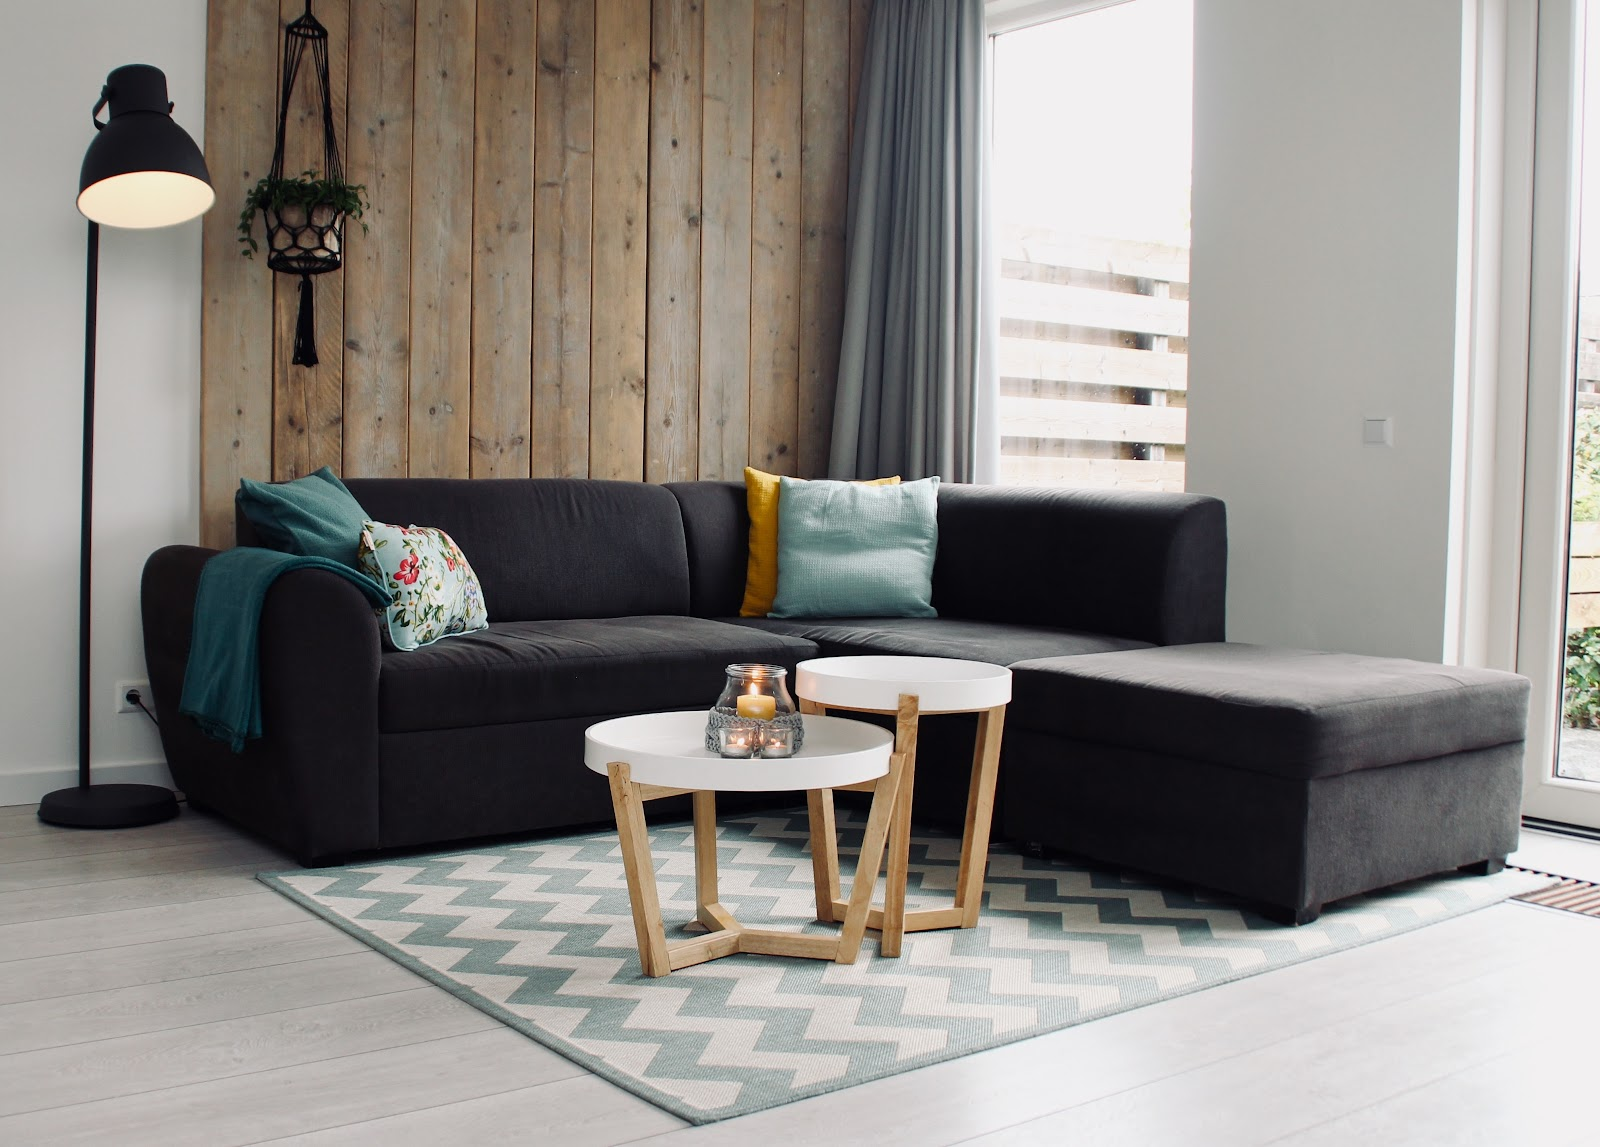 Lounge with large sectional sofa